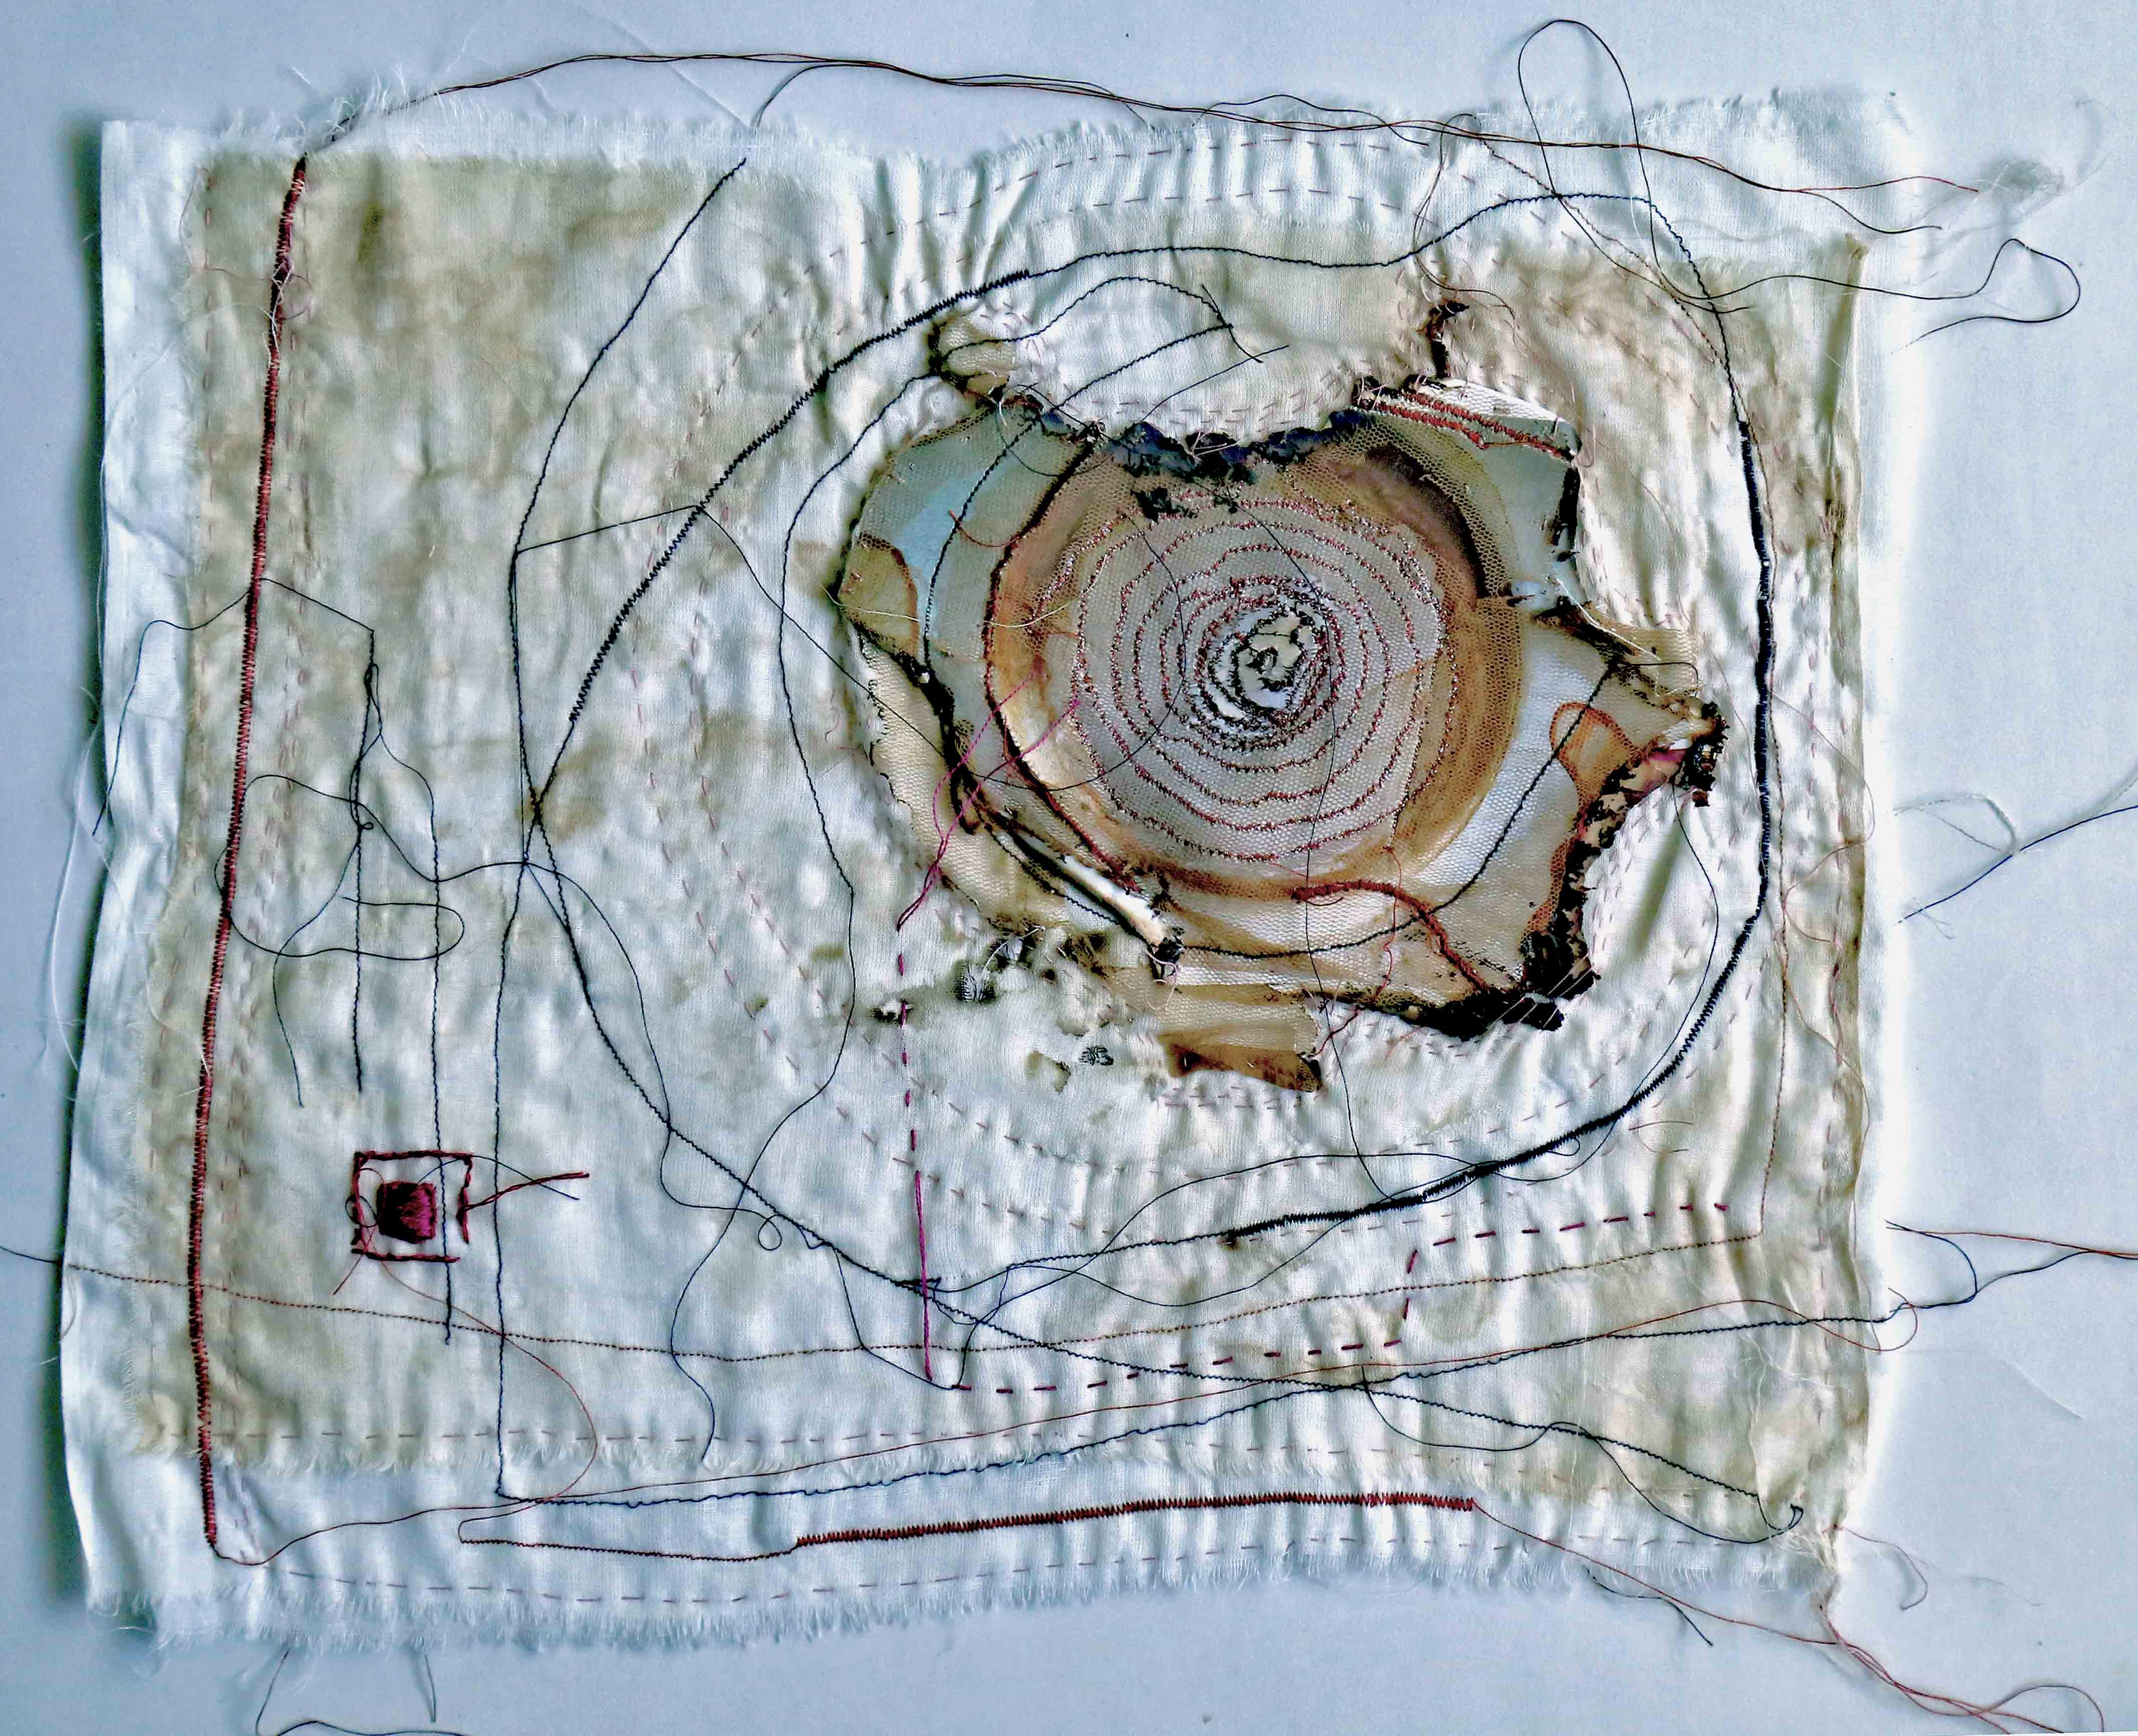 Memory Spiral, 2015, [10 x 12 inches – unframed, set of three], Materials: photographic paper, cotton fabrics, cotton floss cotton-polyester thread, Technique: burning, layering, hand-sewing, machine embroidery, staining with tea-leaves